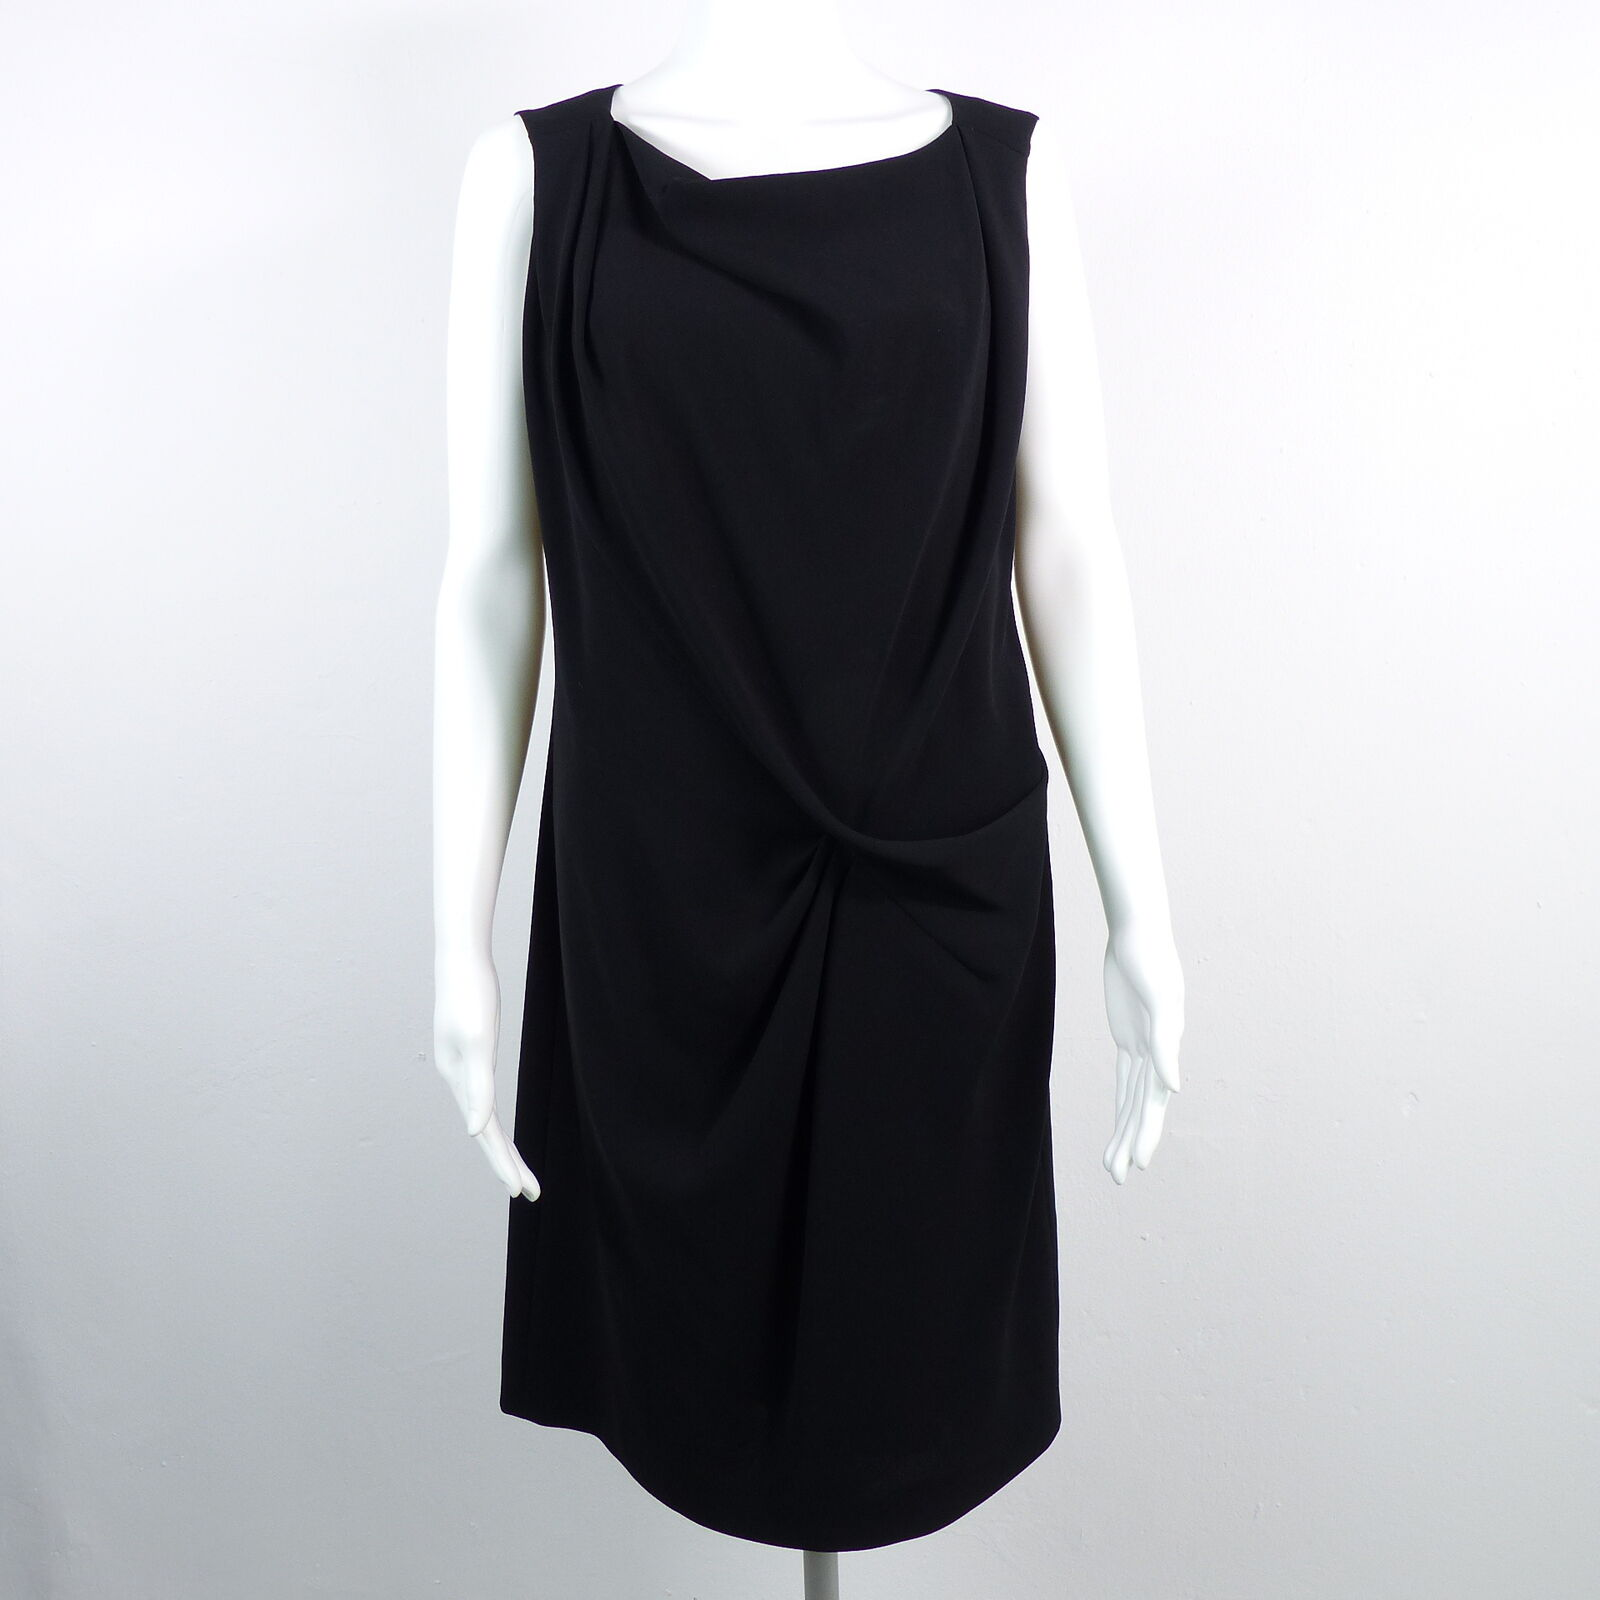 LAUREL Kleid Etuikleid Abendkleid schwarz Damen Gr.38 Robe Dress